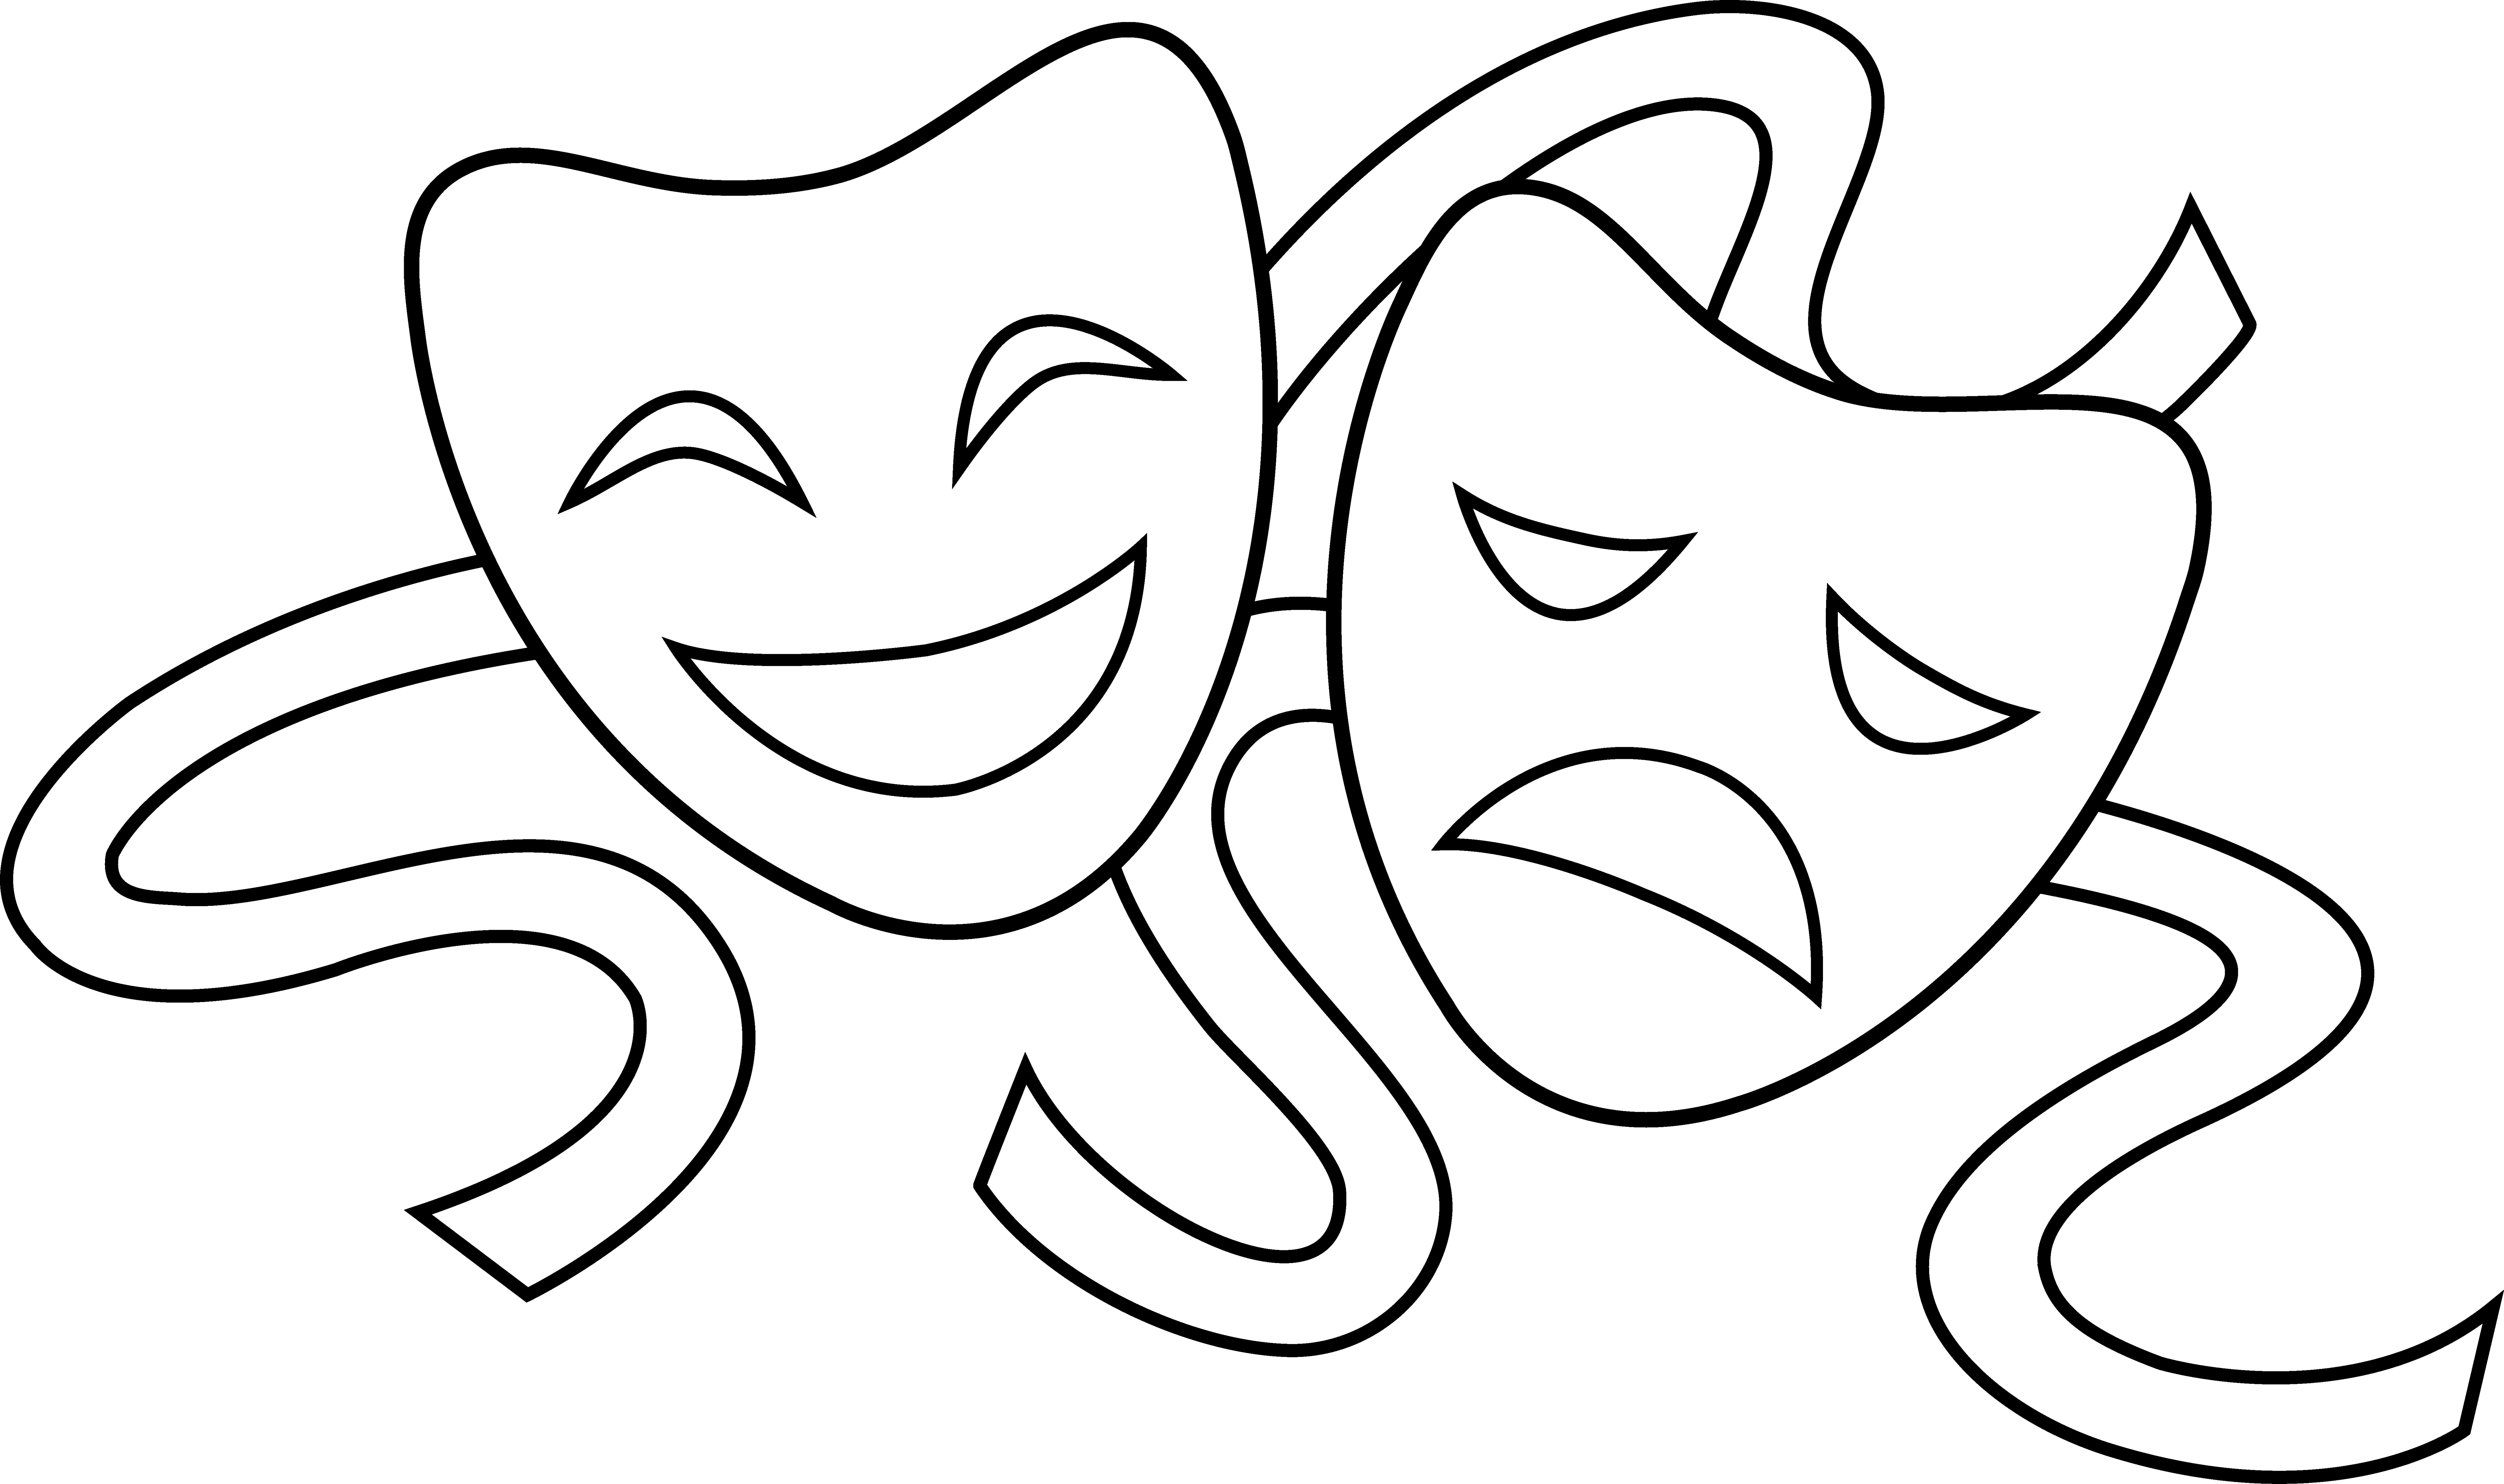 ... drama masks drawings clip - Theatre Masks Clip Art